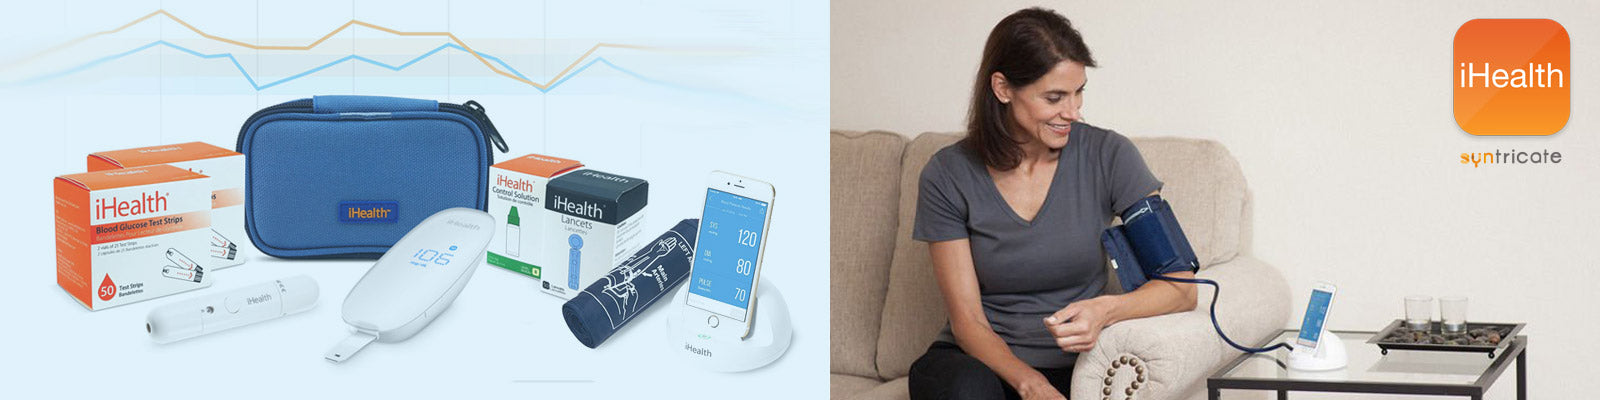 Buy iHealth accessories, heart monitor, blood pressure tester in Australia